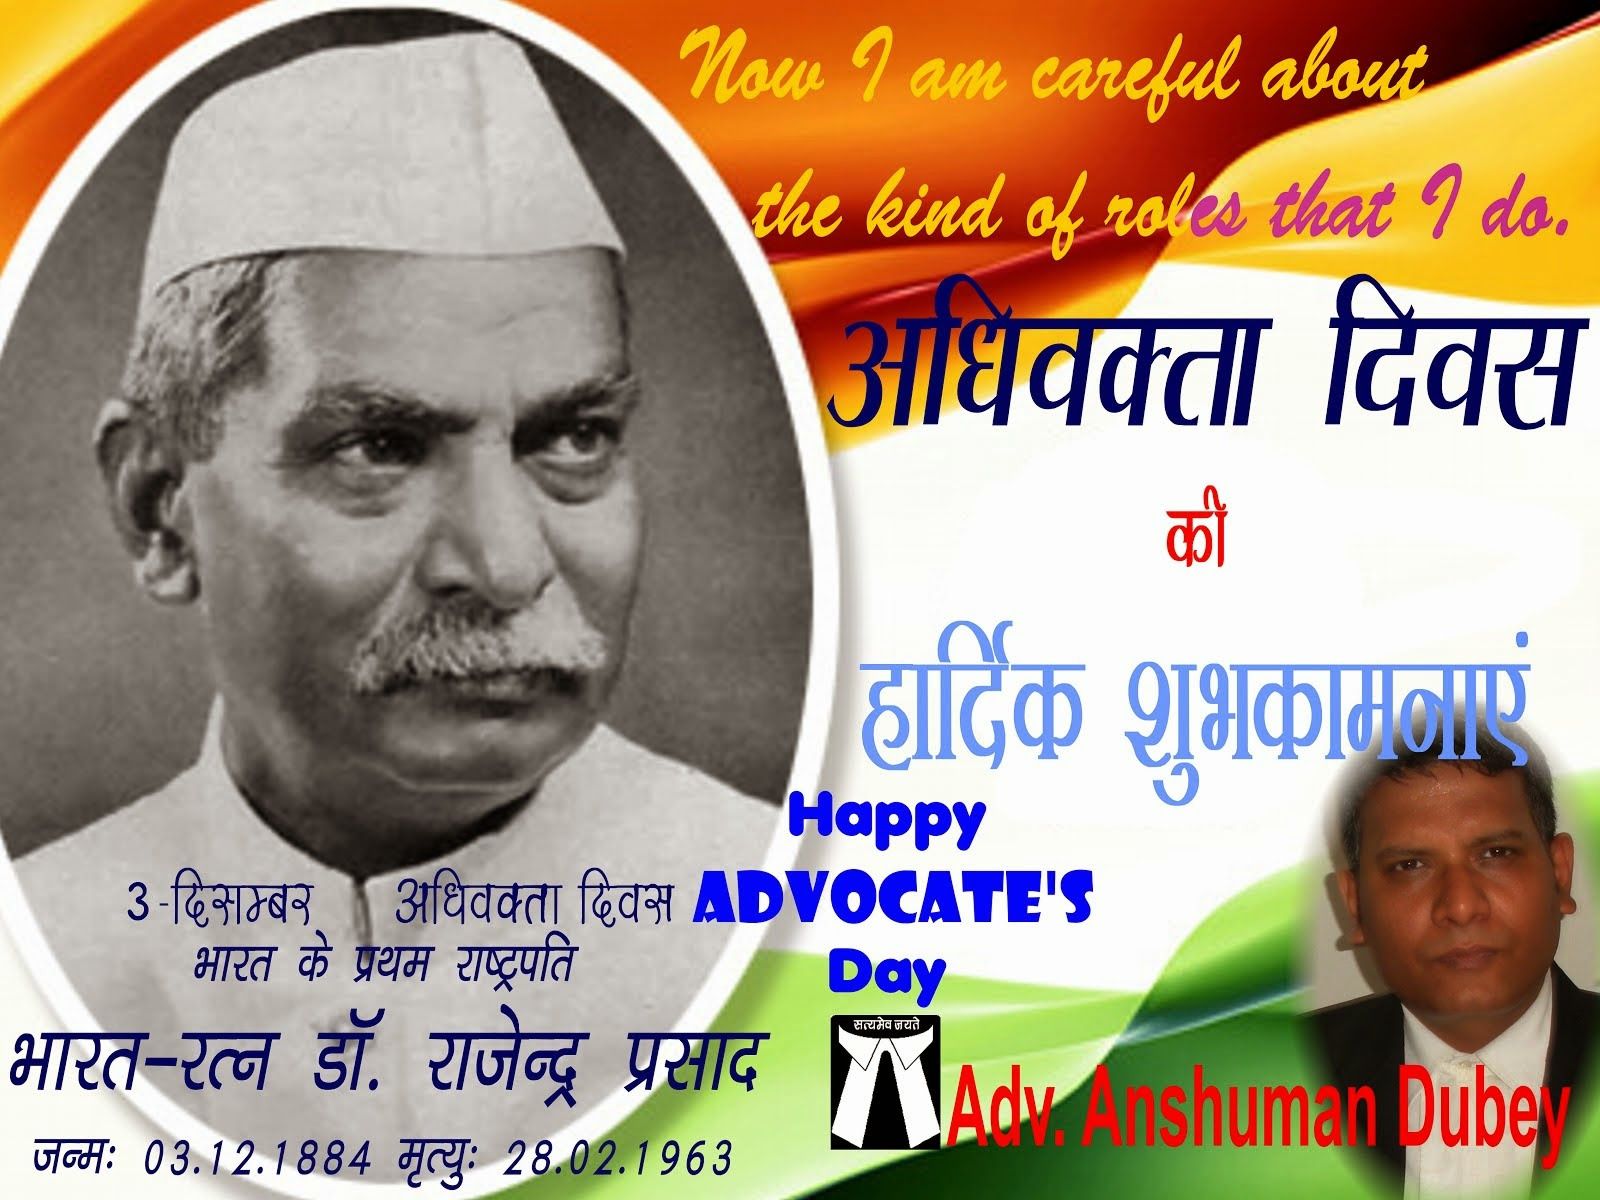 Advocate's Day Wishes:-